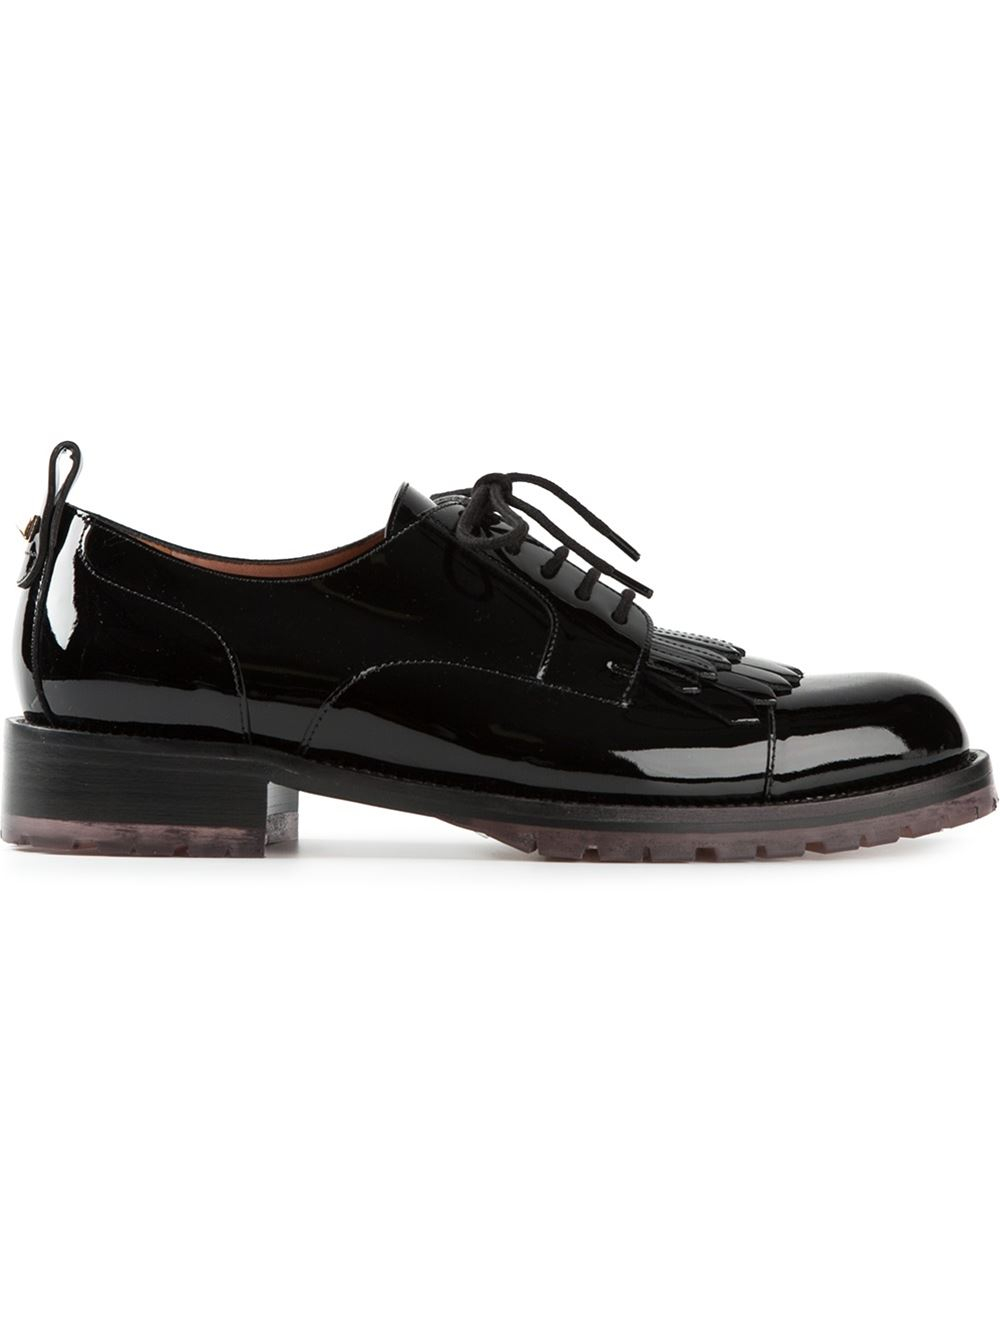 valentino b formal patent leather brogues in black lyst